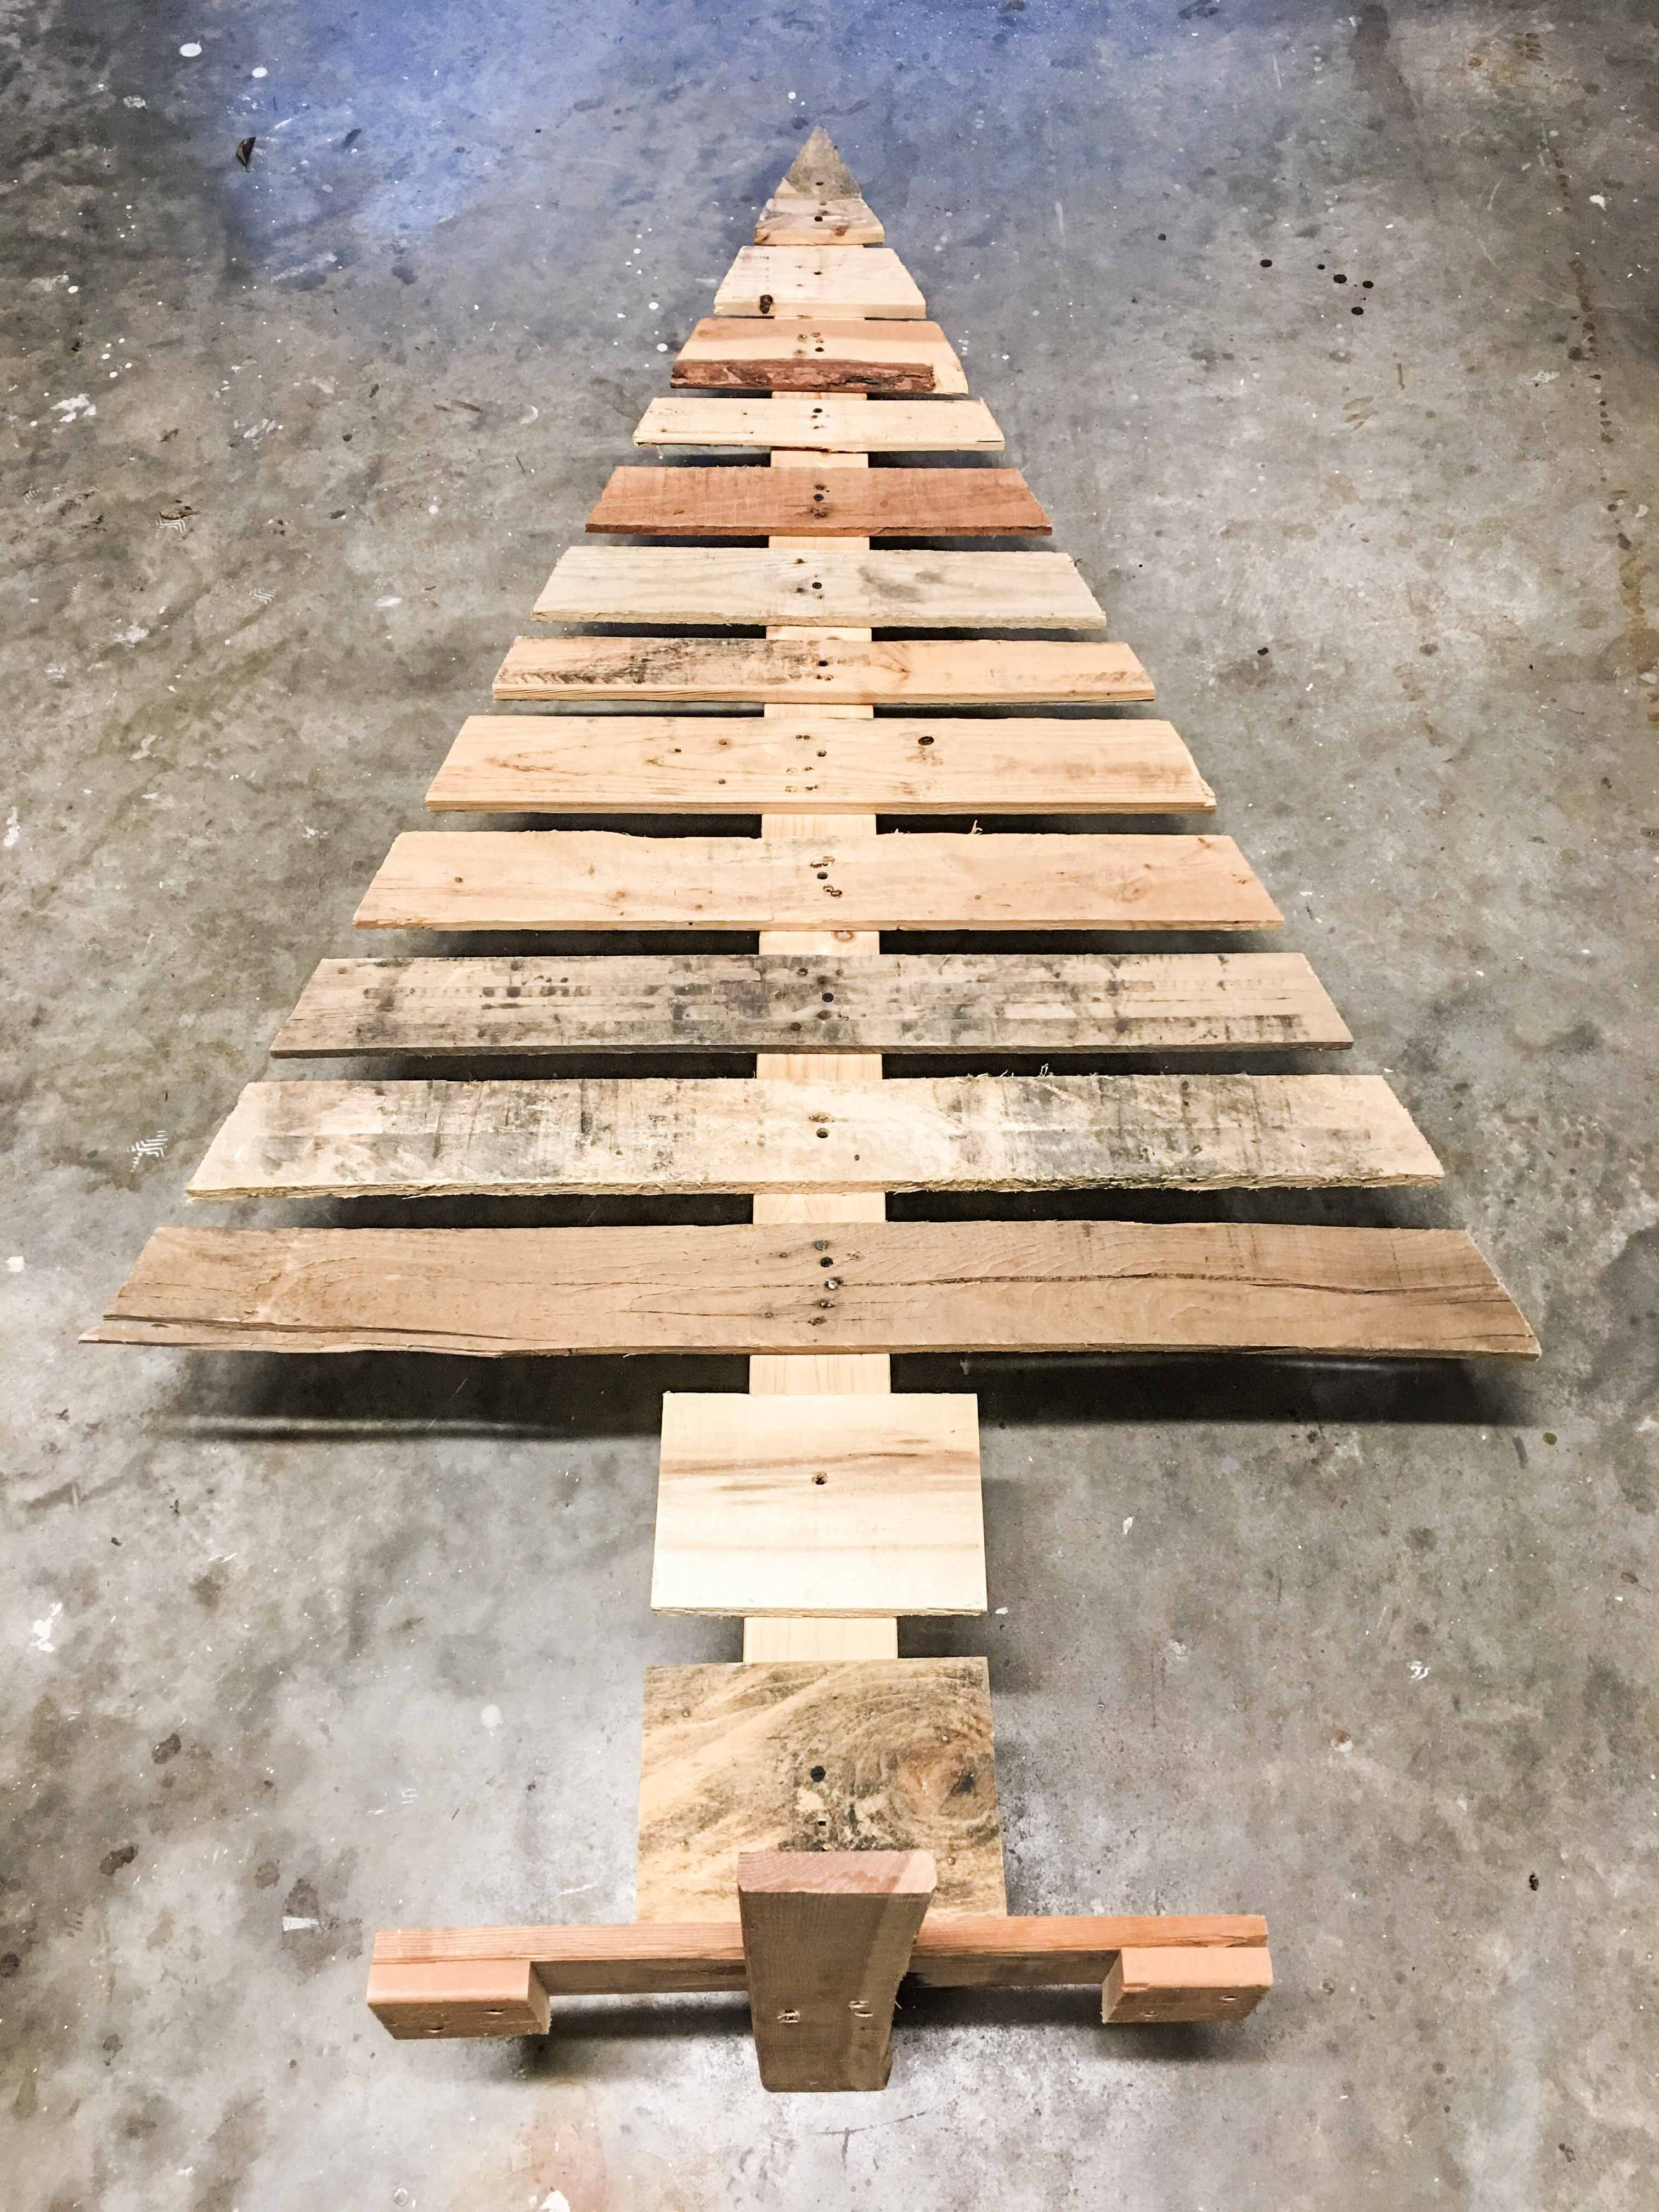 How to Build a DIY Pallet Christmas Tree - Building Our ...